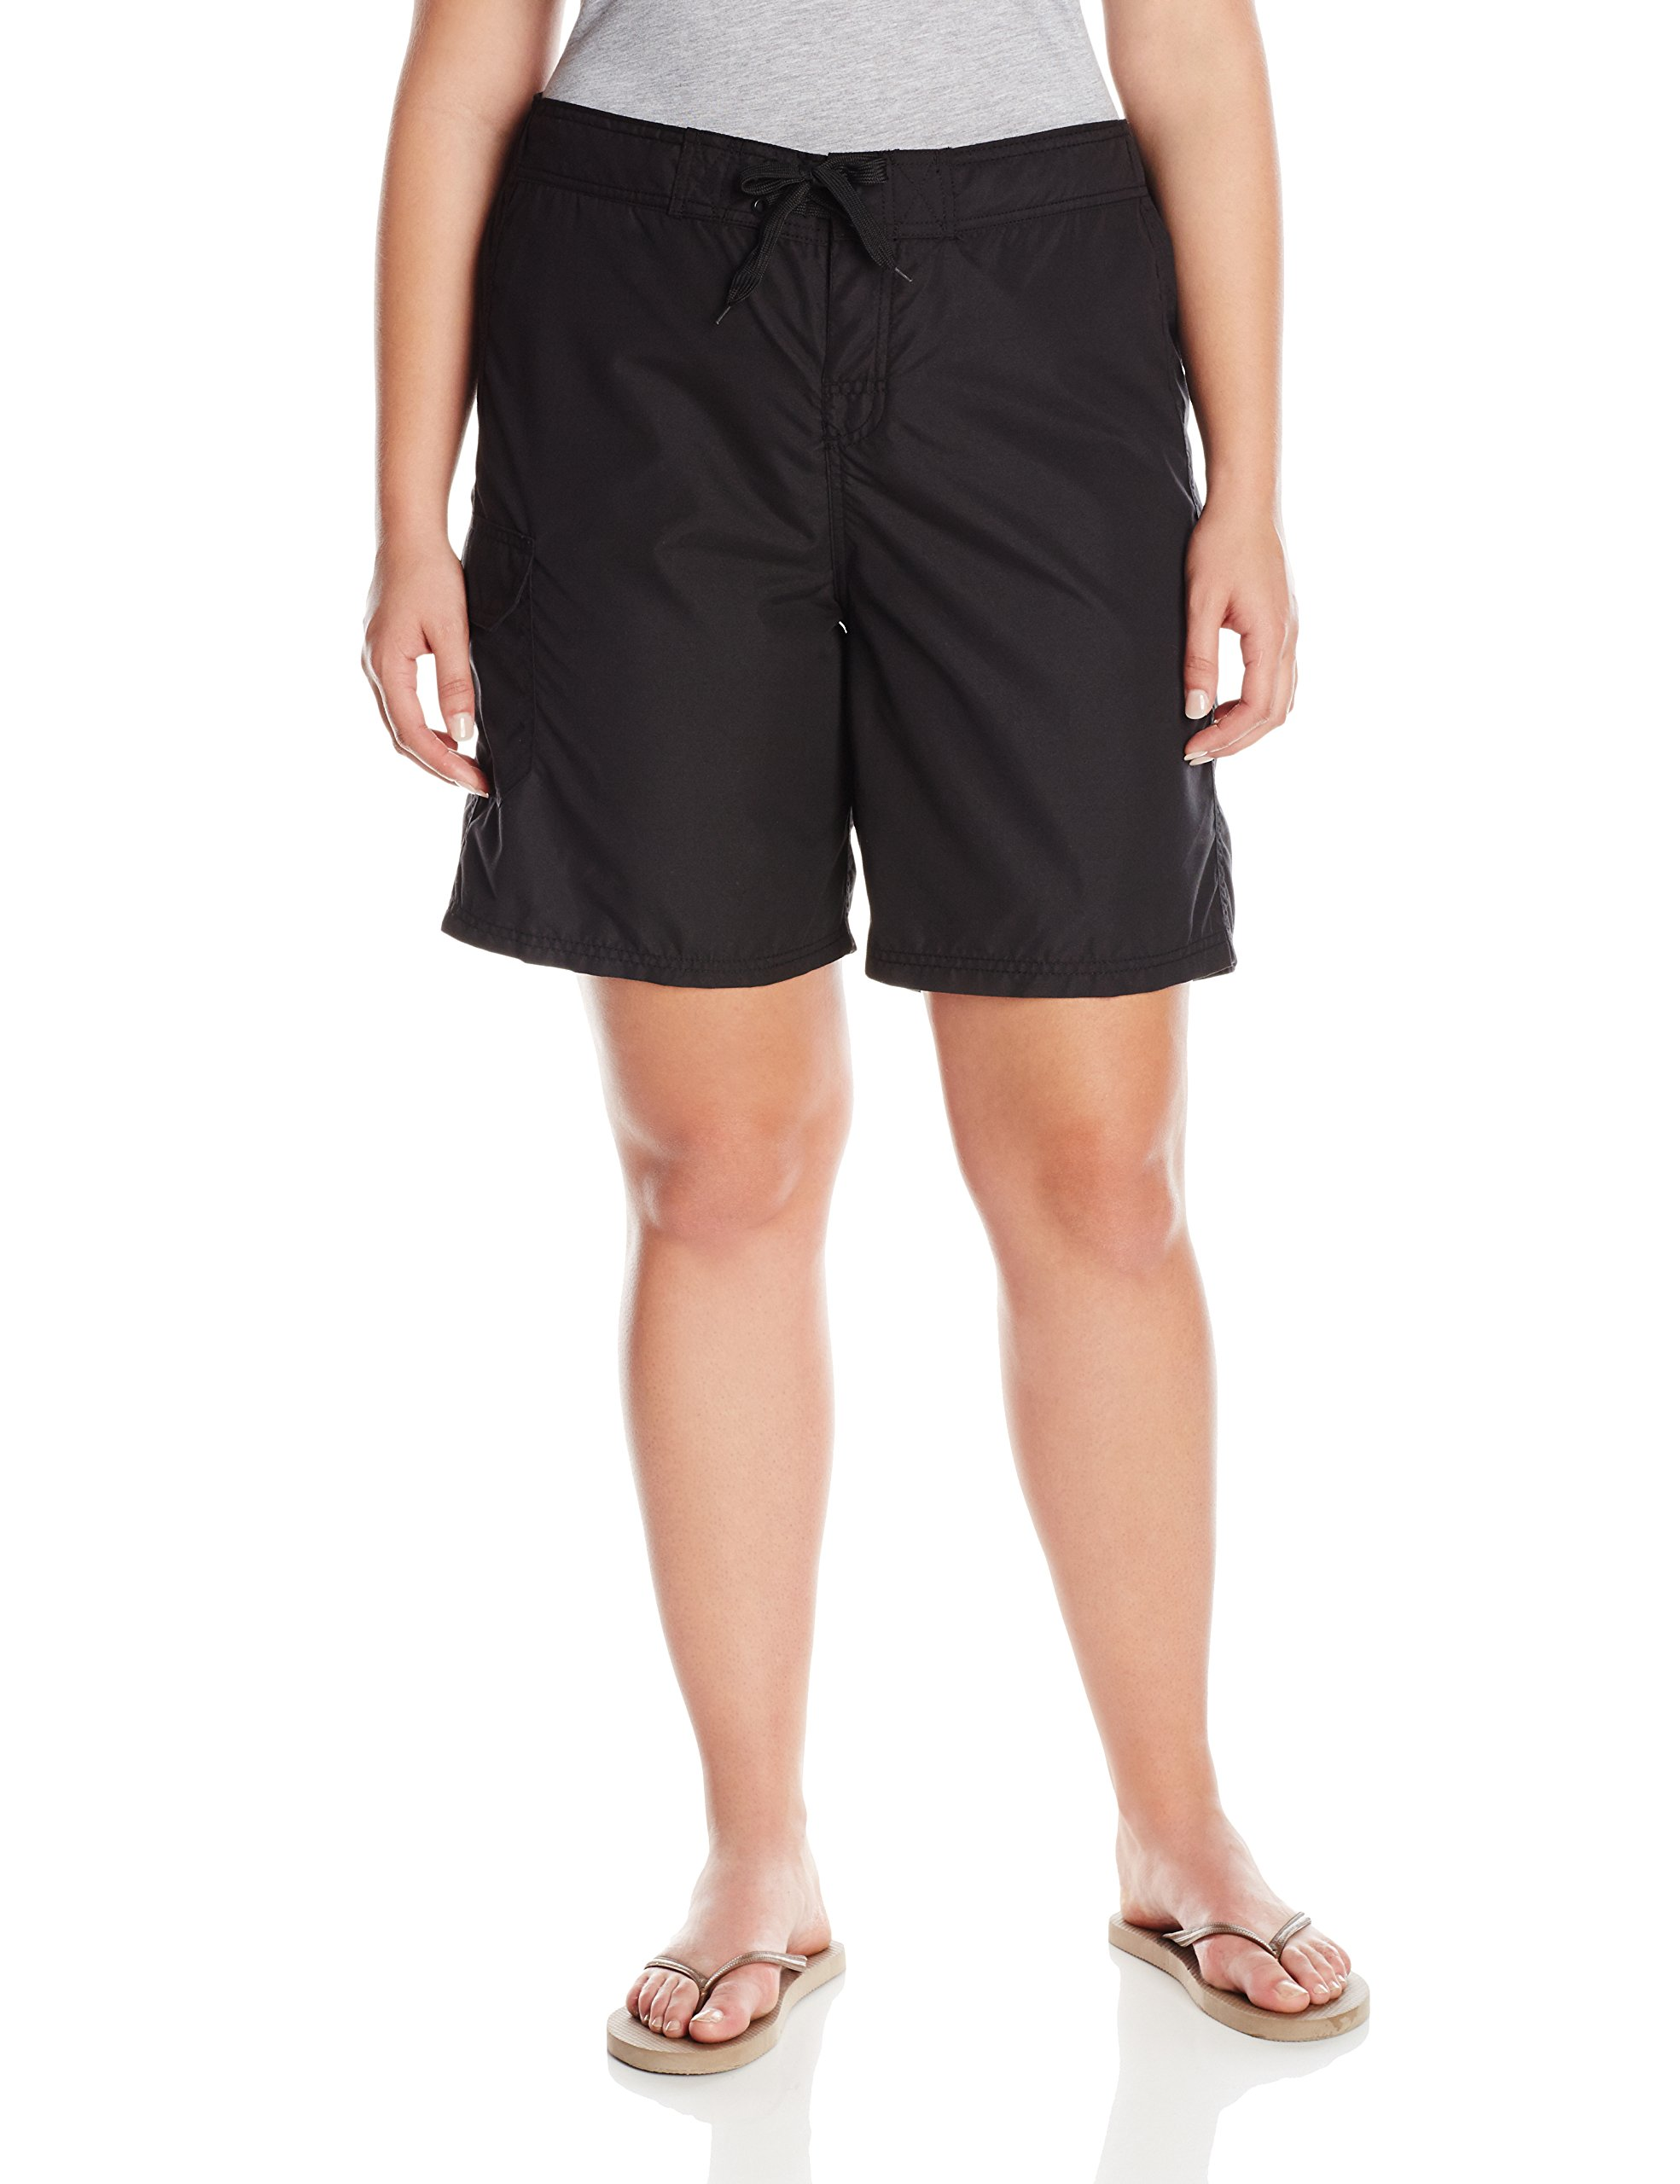 Kanu Surf Women's Plus-Size Marina Board Shorts, Black, 2X